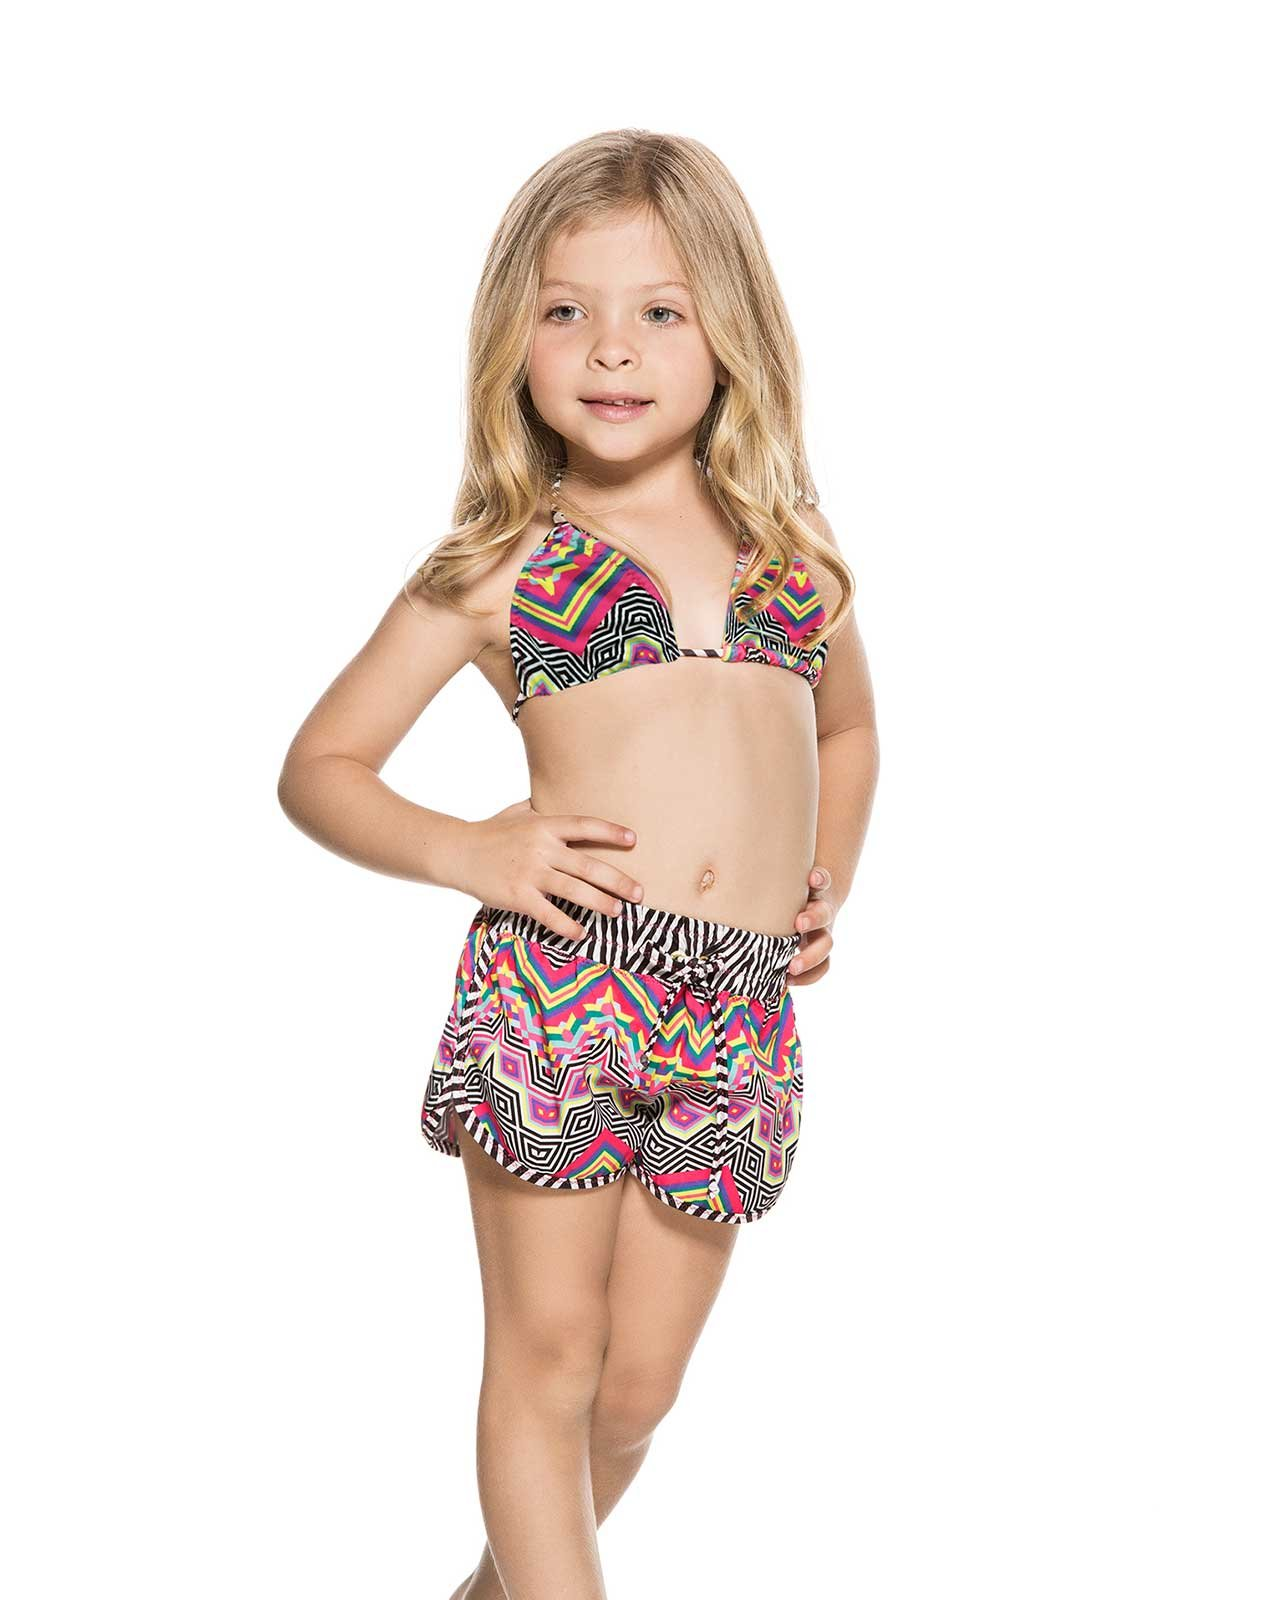 AGUA BENDITA BENDITO POLIGONO KIDS SHORT, 6 by Agua Bendita